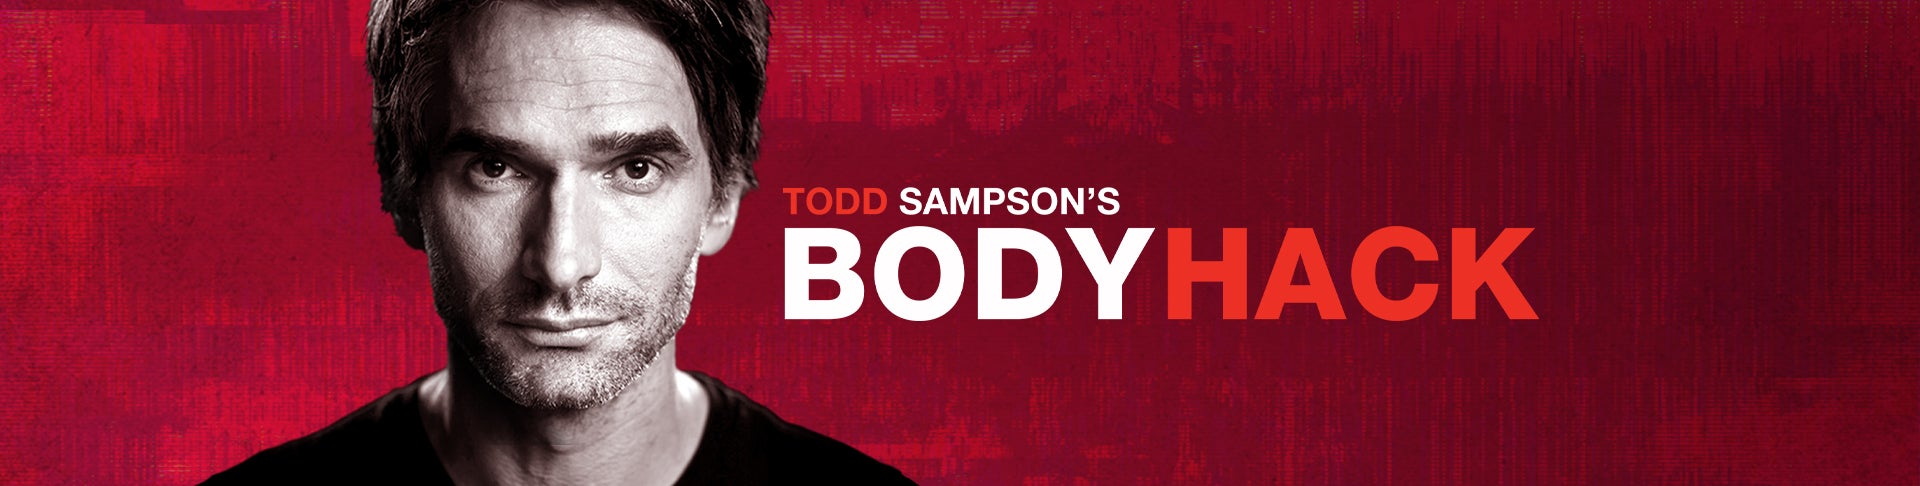 Todd Sampson's Body Hack - Network Ten